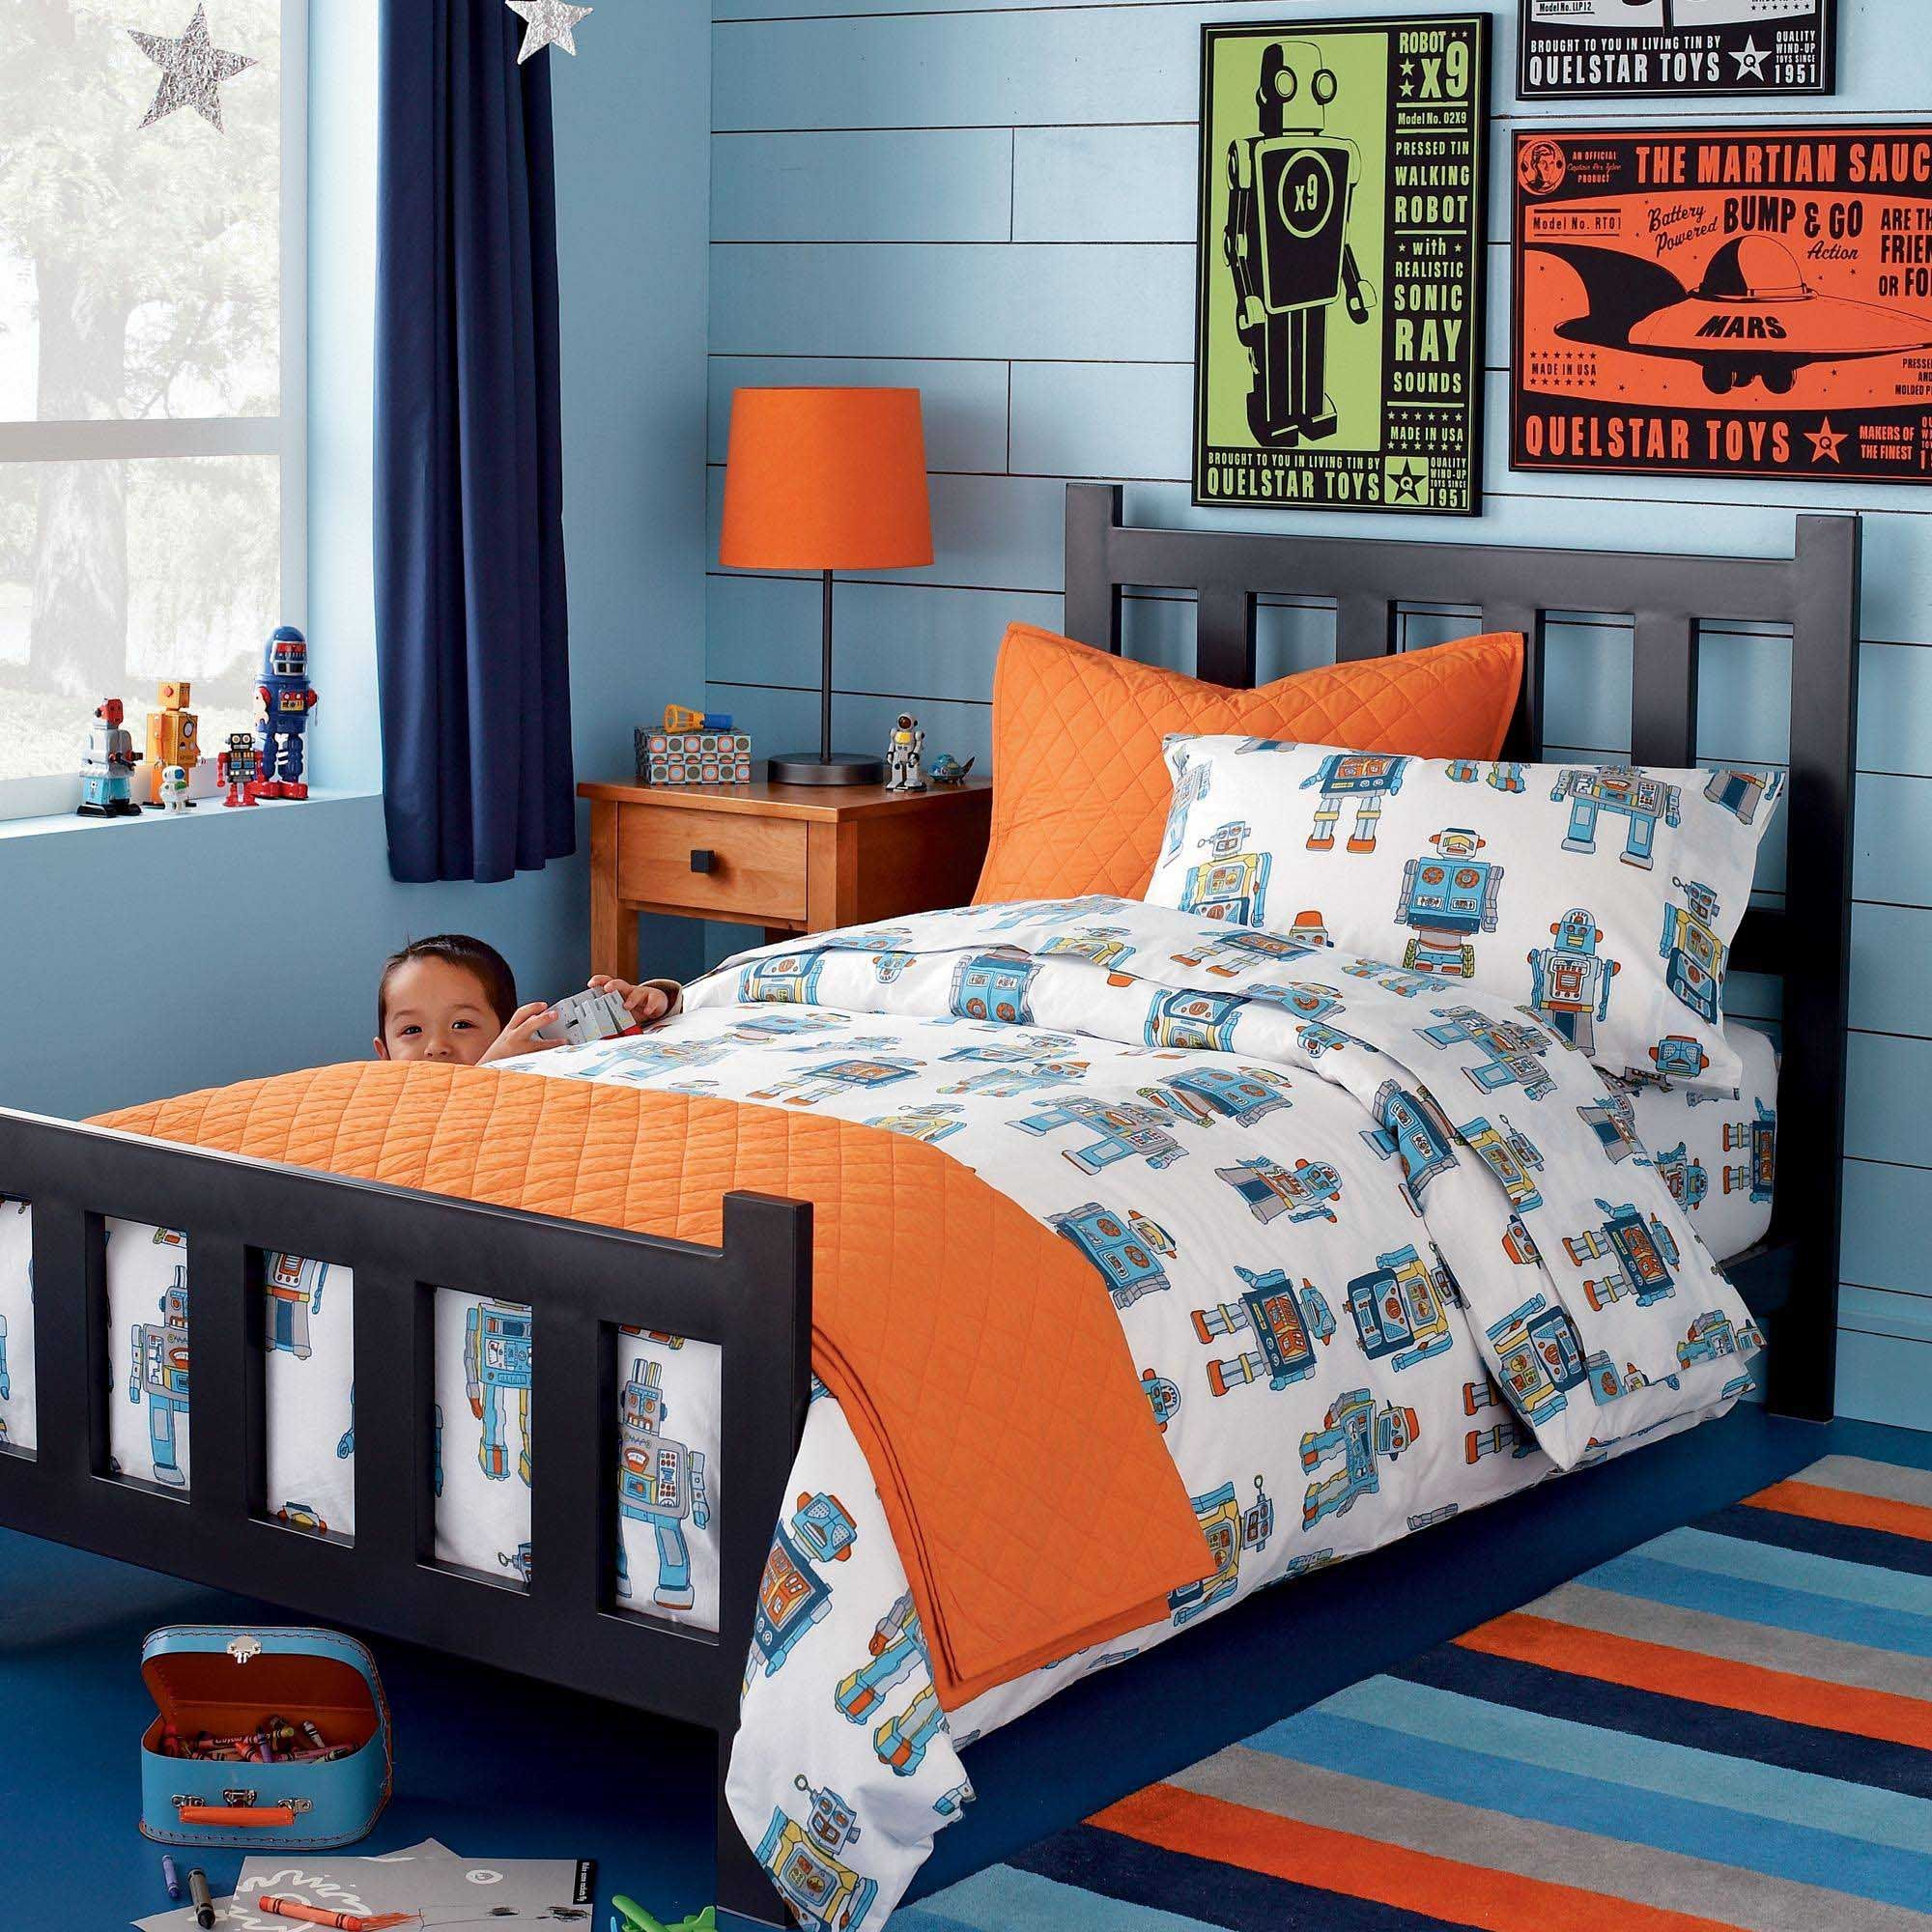 Kids Room Short Dark Blue Curtains For Boy Set Near Orange Table Lamp